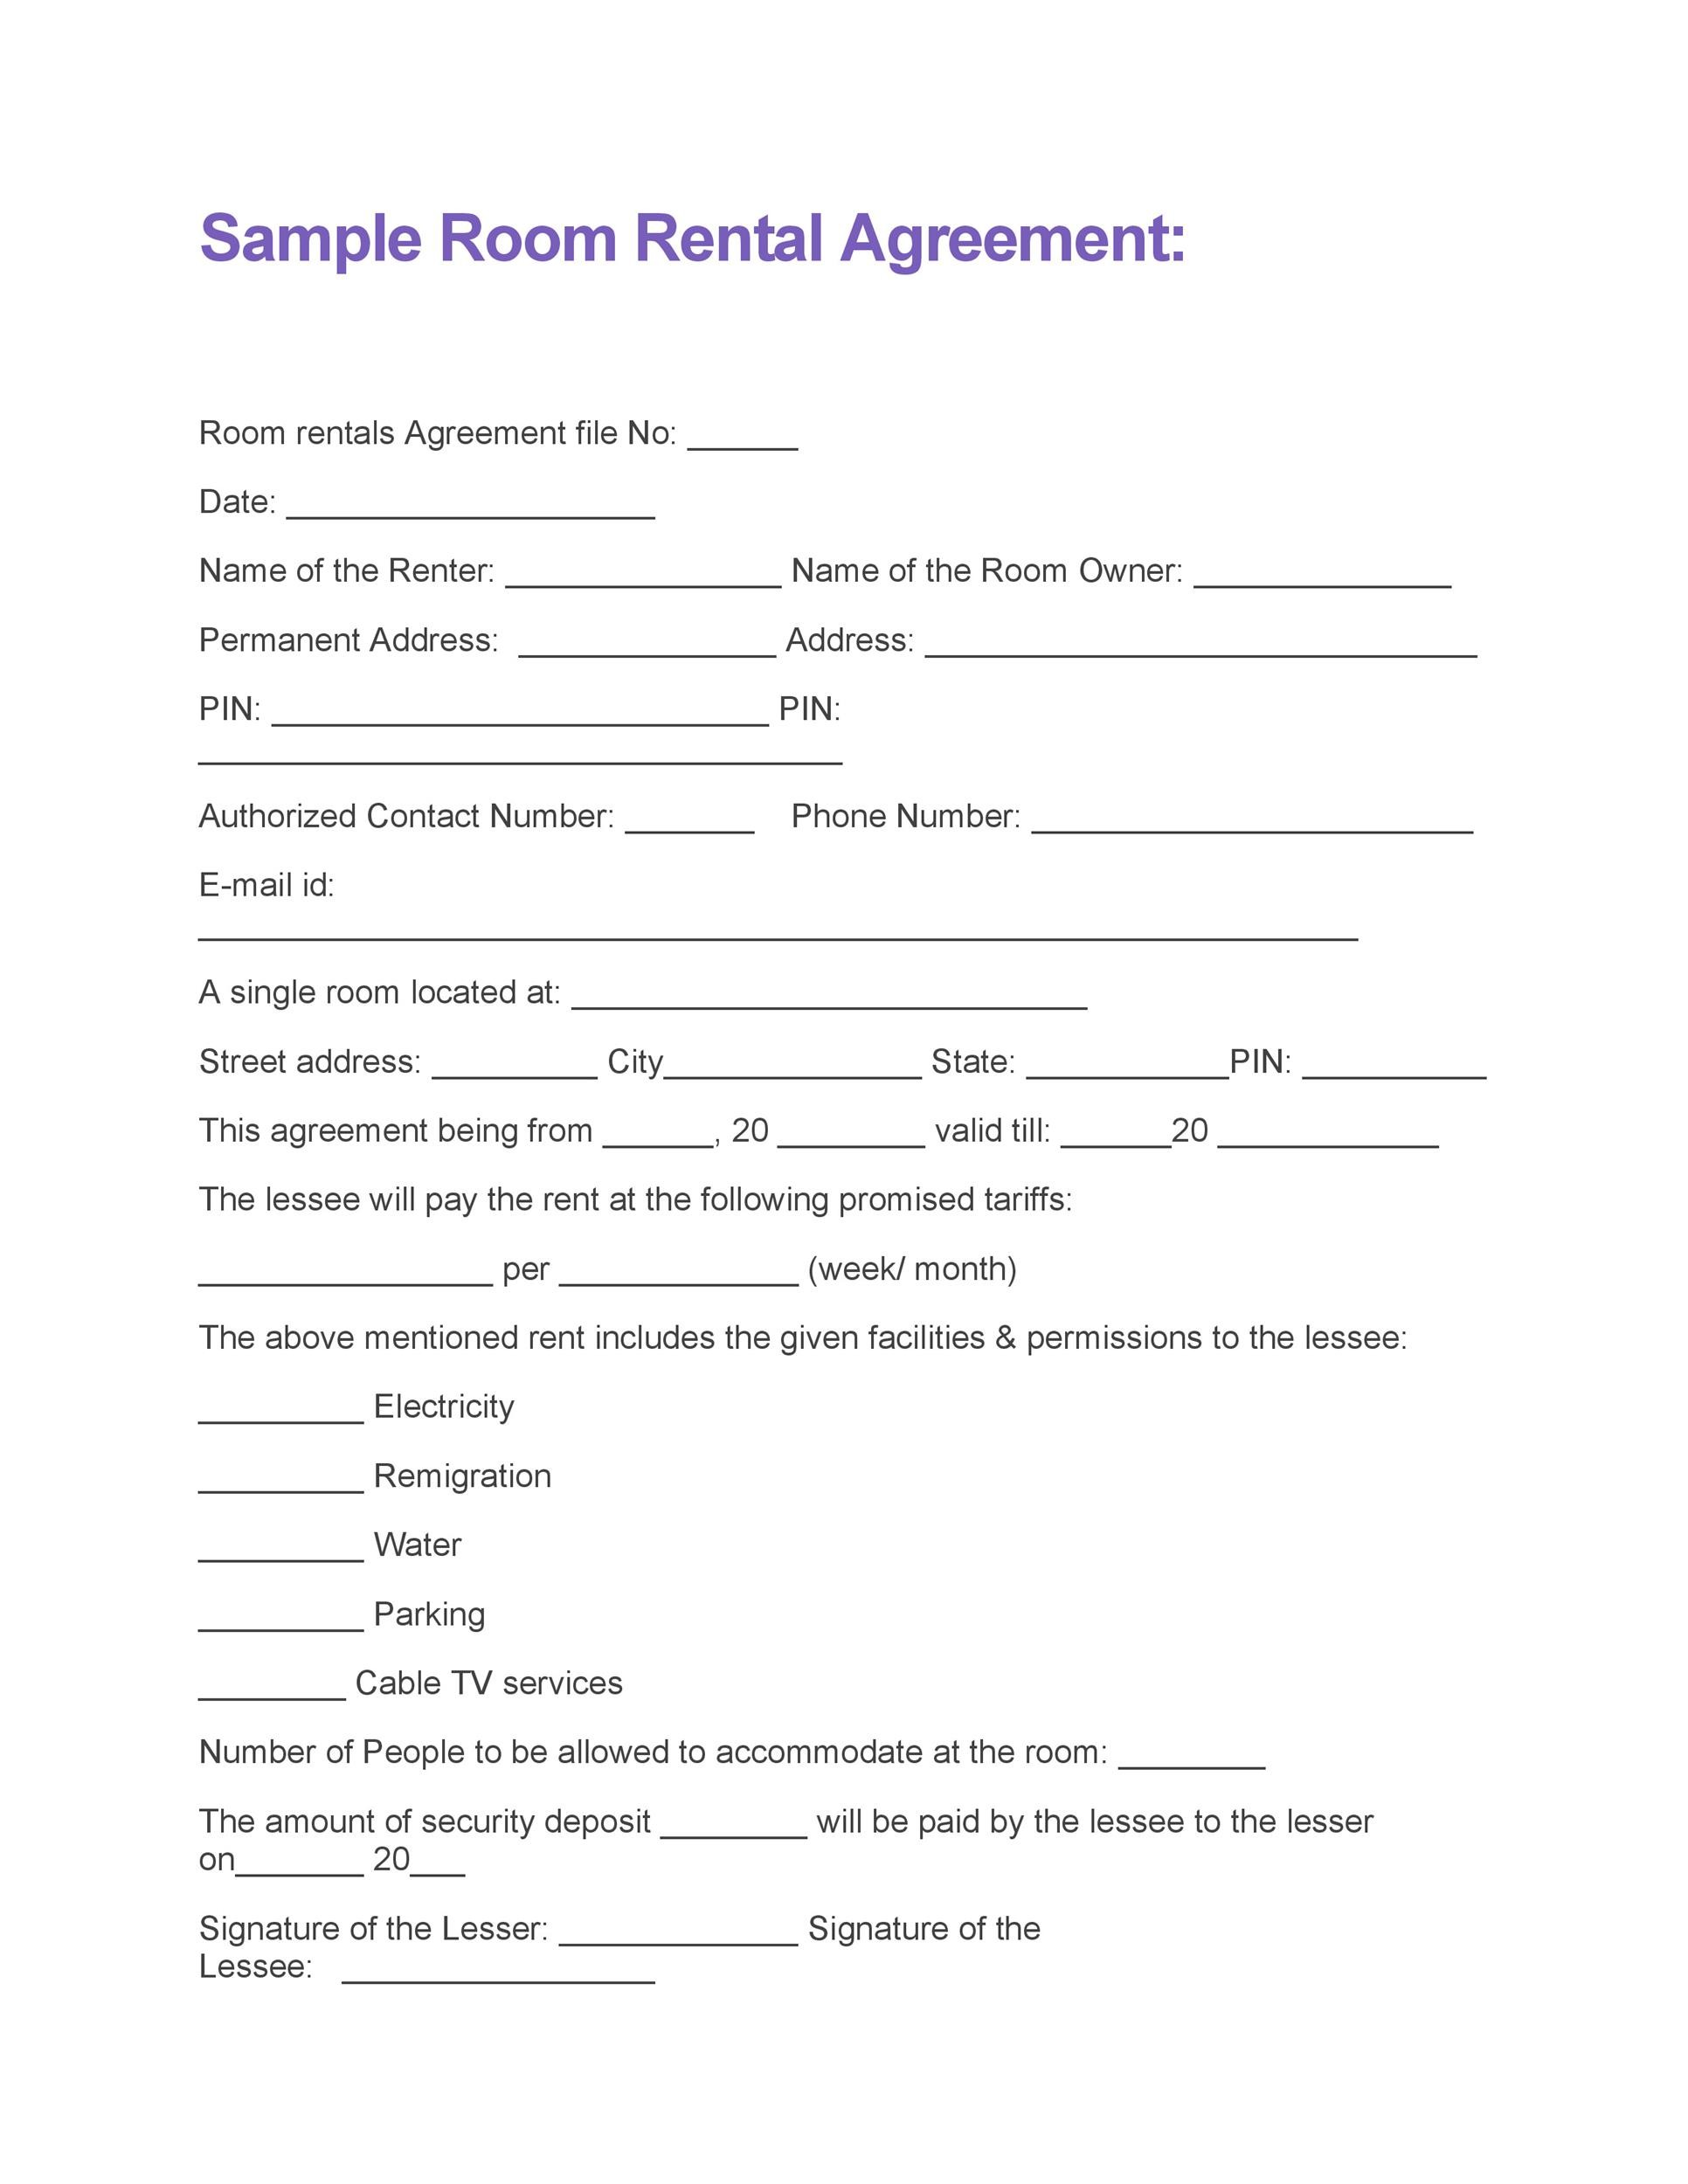 Sample Room For Rent Contract Printable Sample Rental Agreement